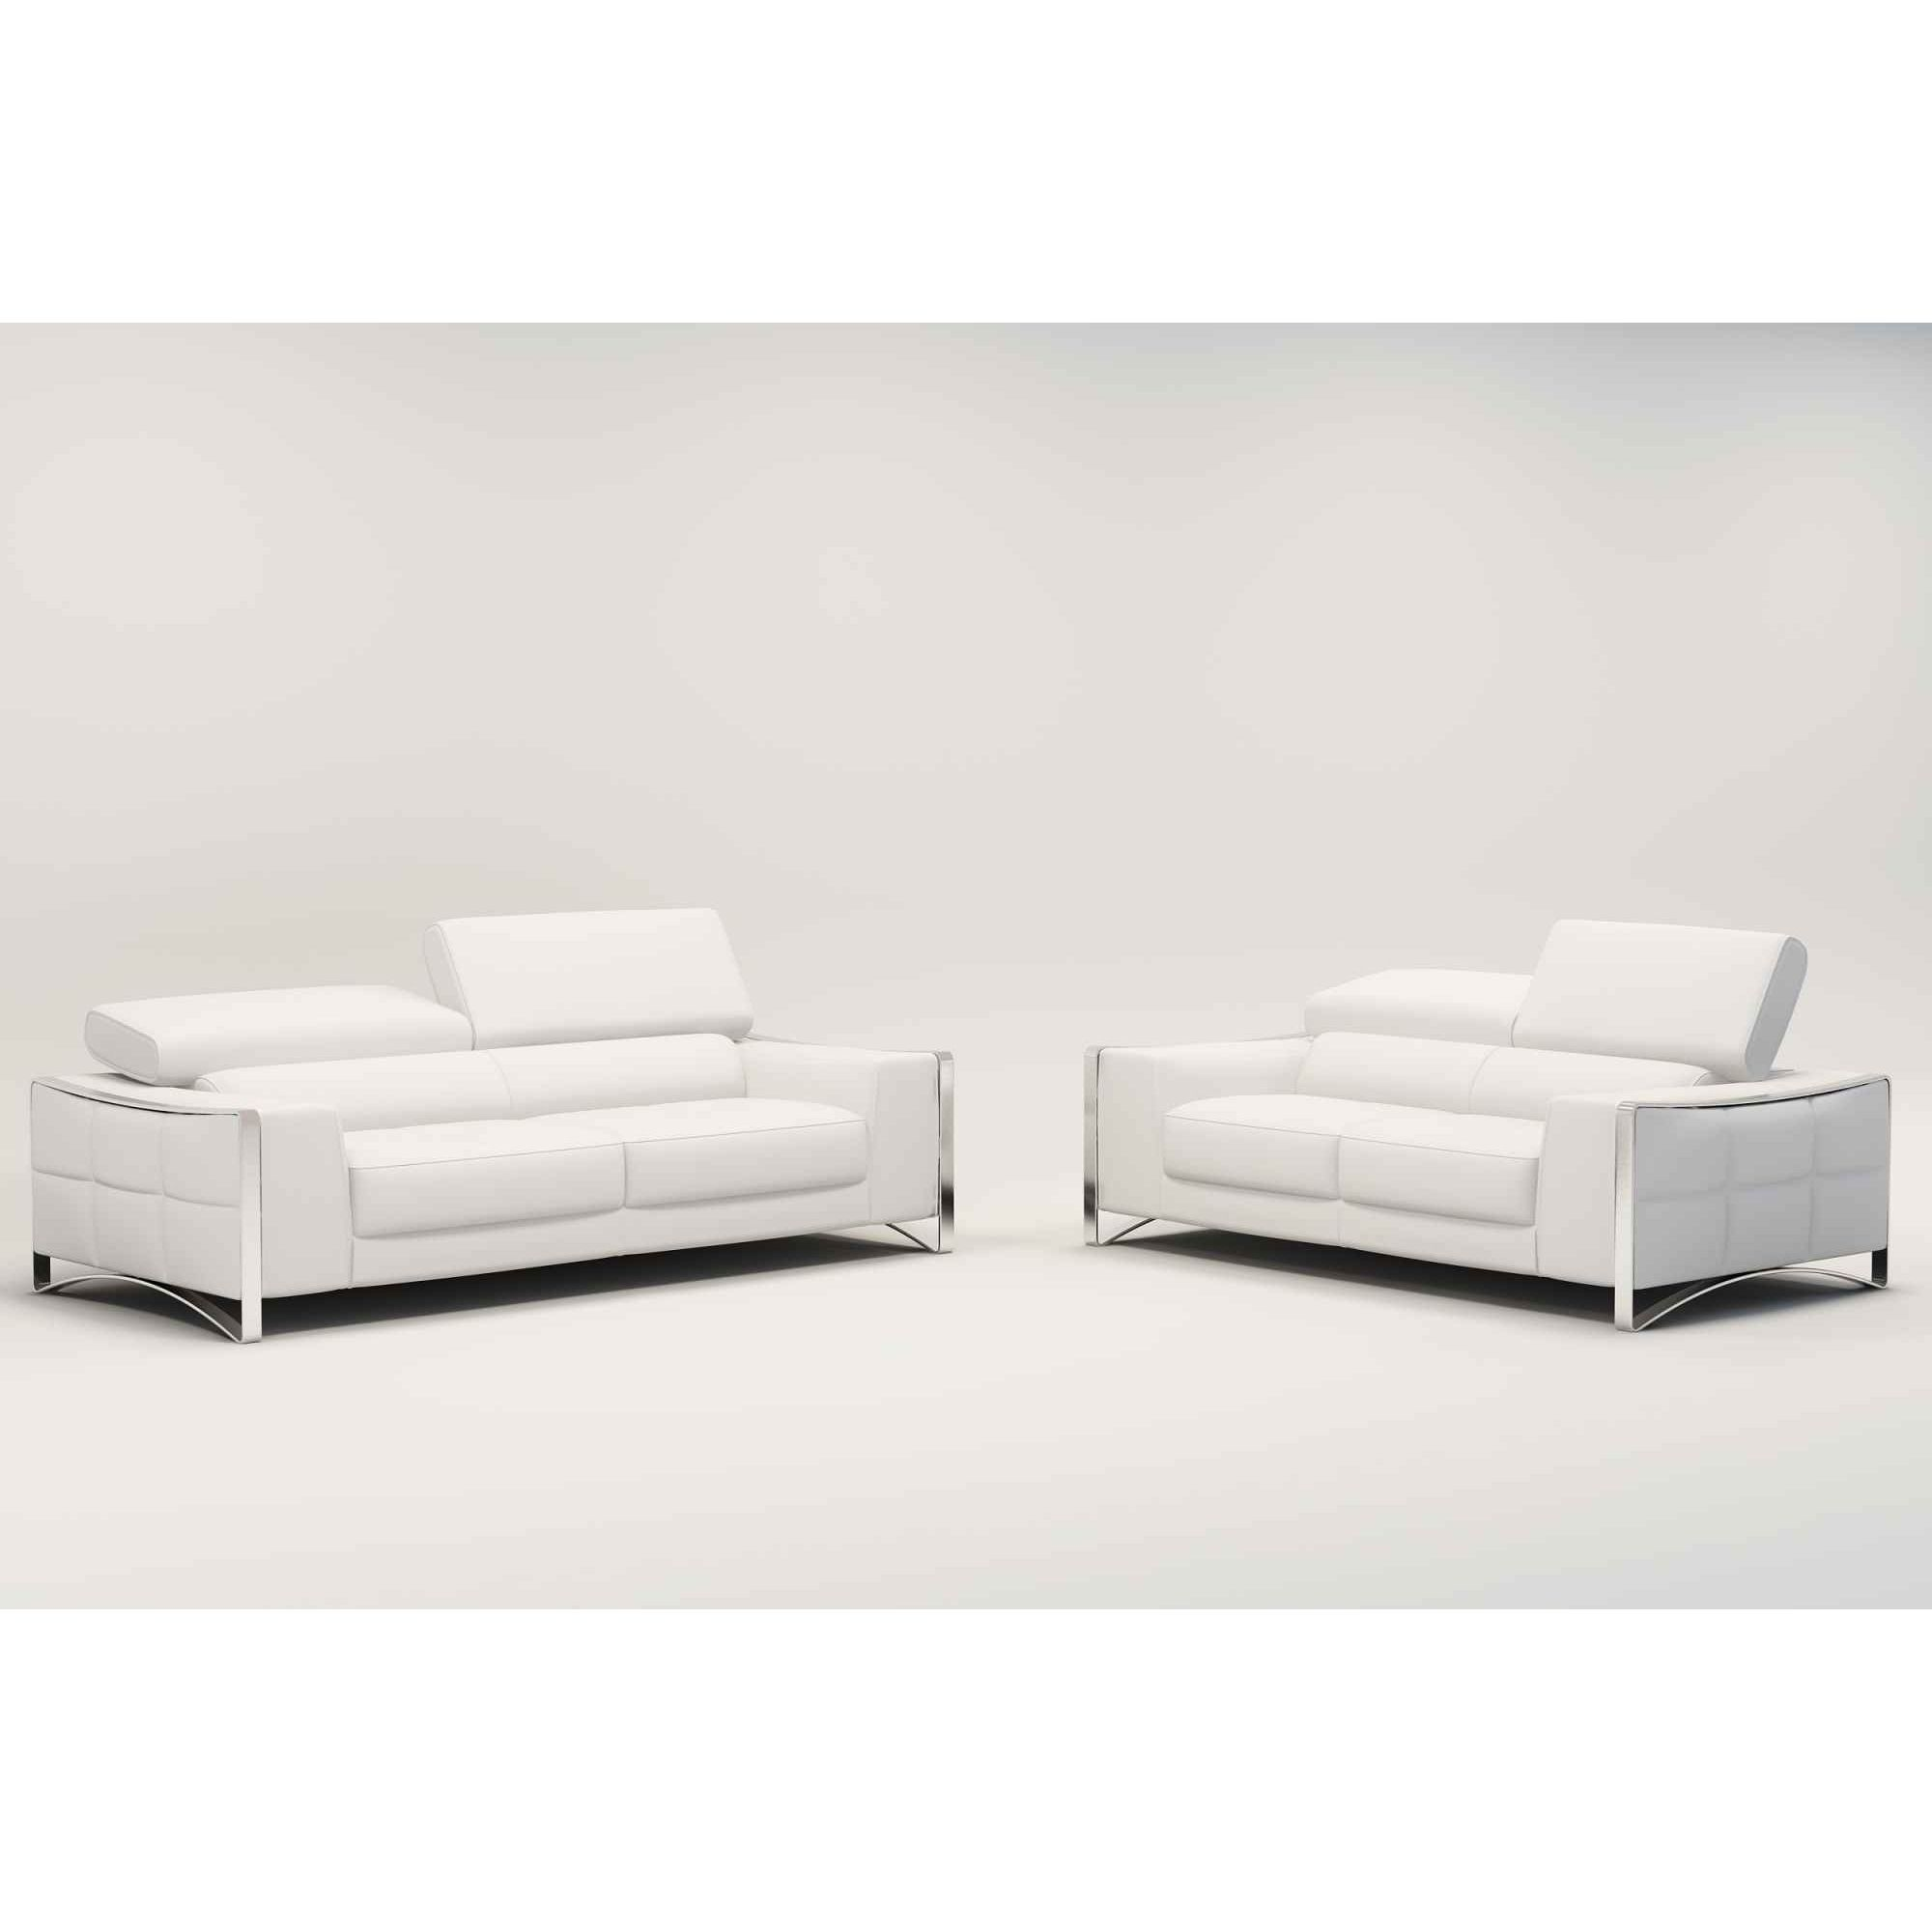 Deco in paris 2 ensemble canape cuir 3 2 places blanc sheyla sheyla blanc c - Canape 3 places blanc ...